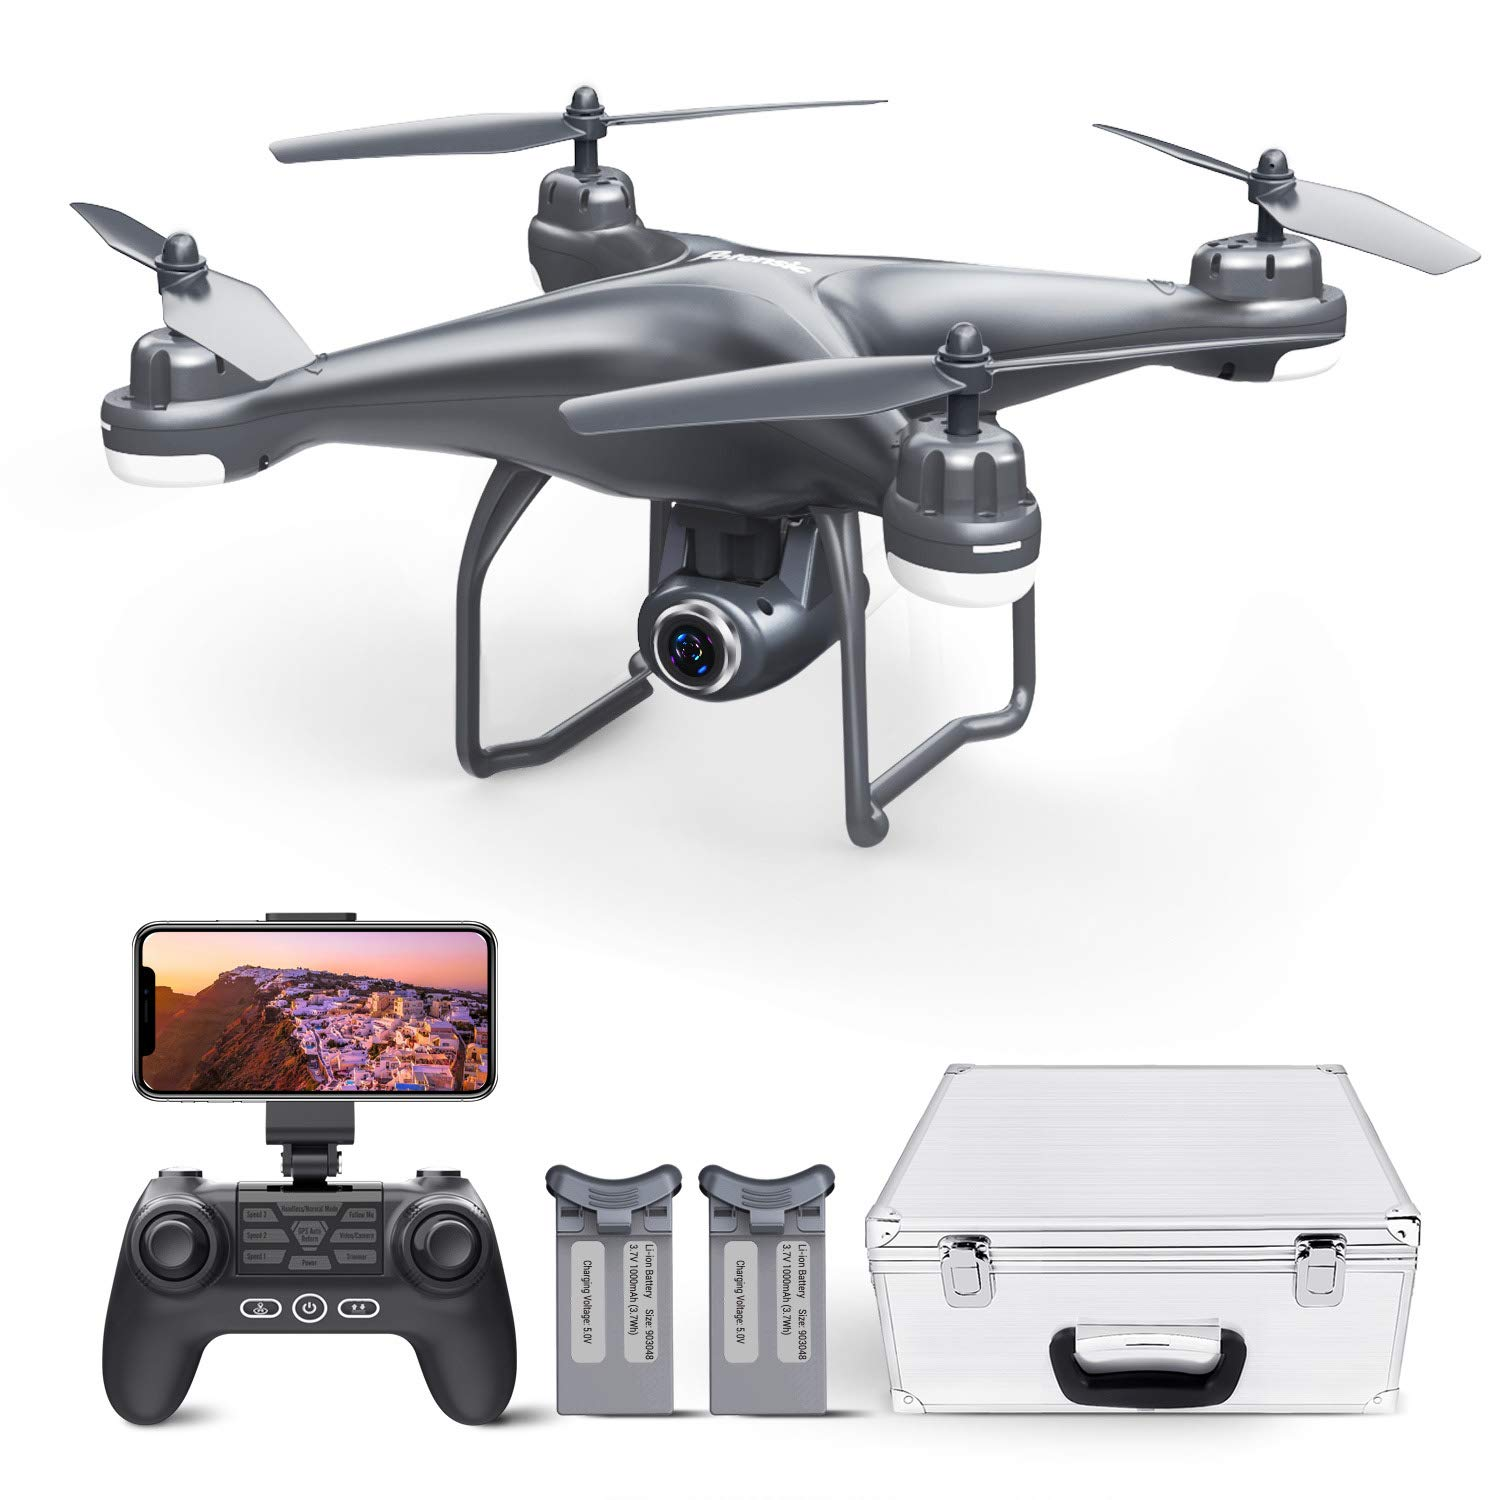 Potensic T25 GPS Drone, FPV RC Drone with Camera 1080P HD WiFi Live Video, Auto Return Home, Altitude Hold, Follow Me and Carrying Case by Potensic (Image #1)